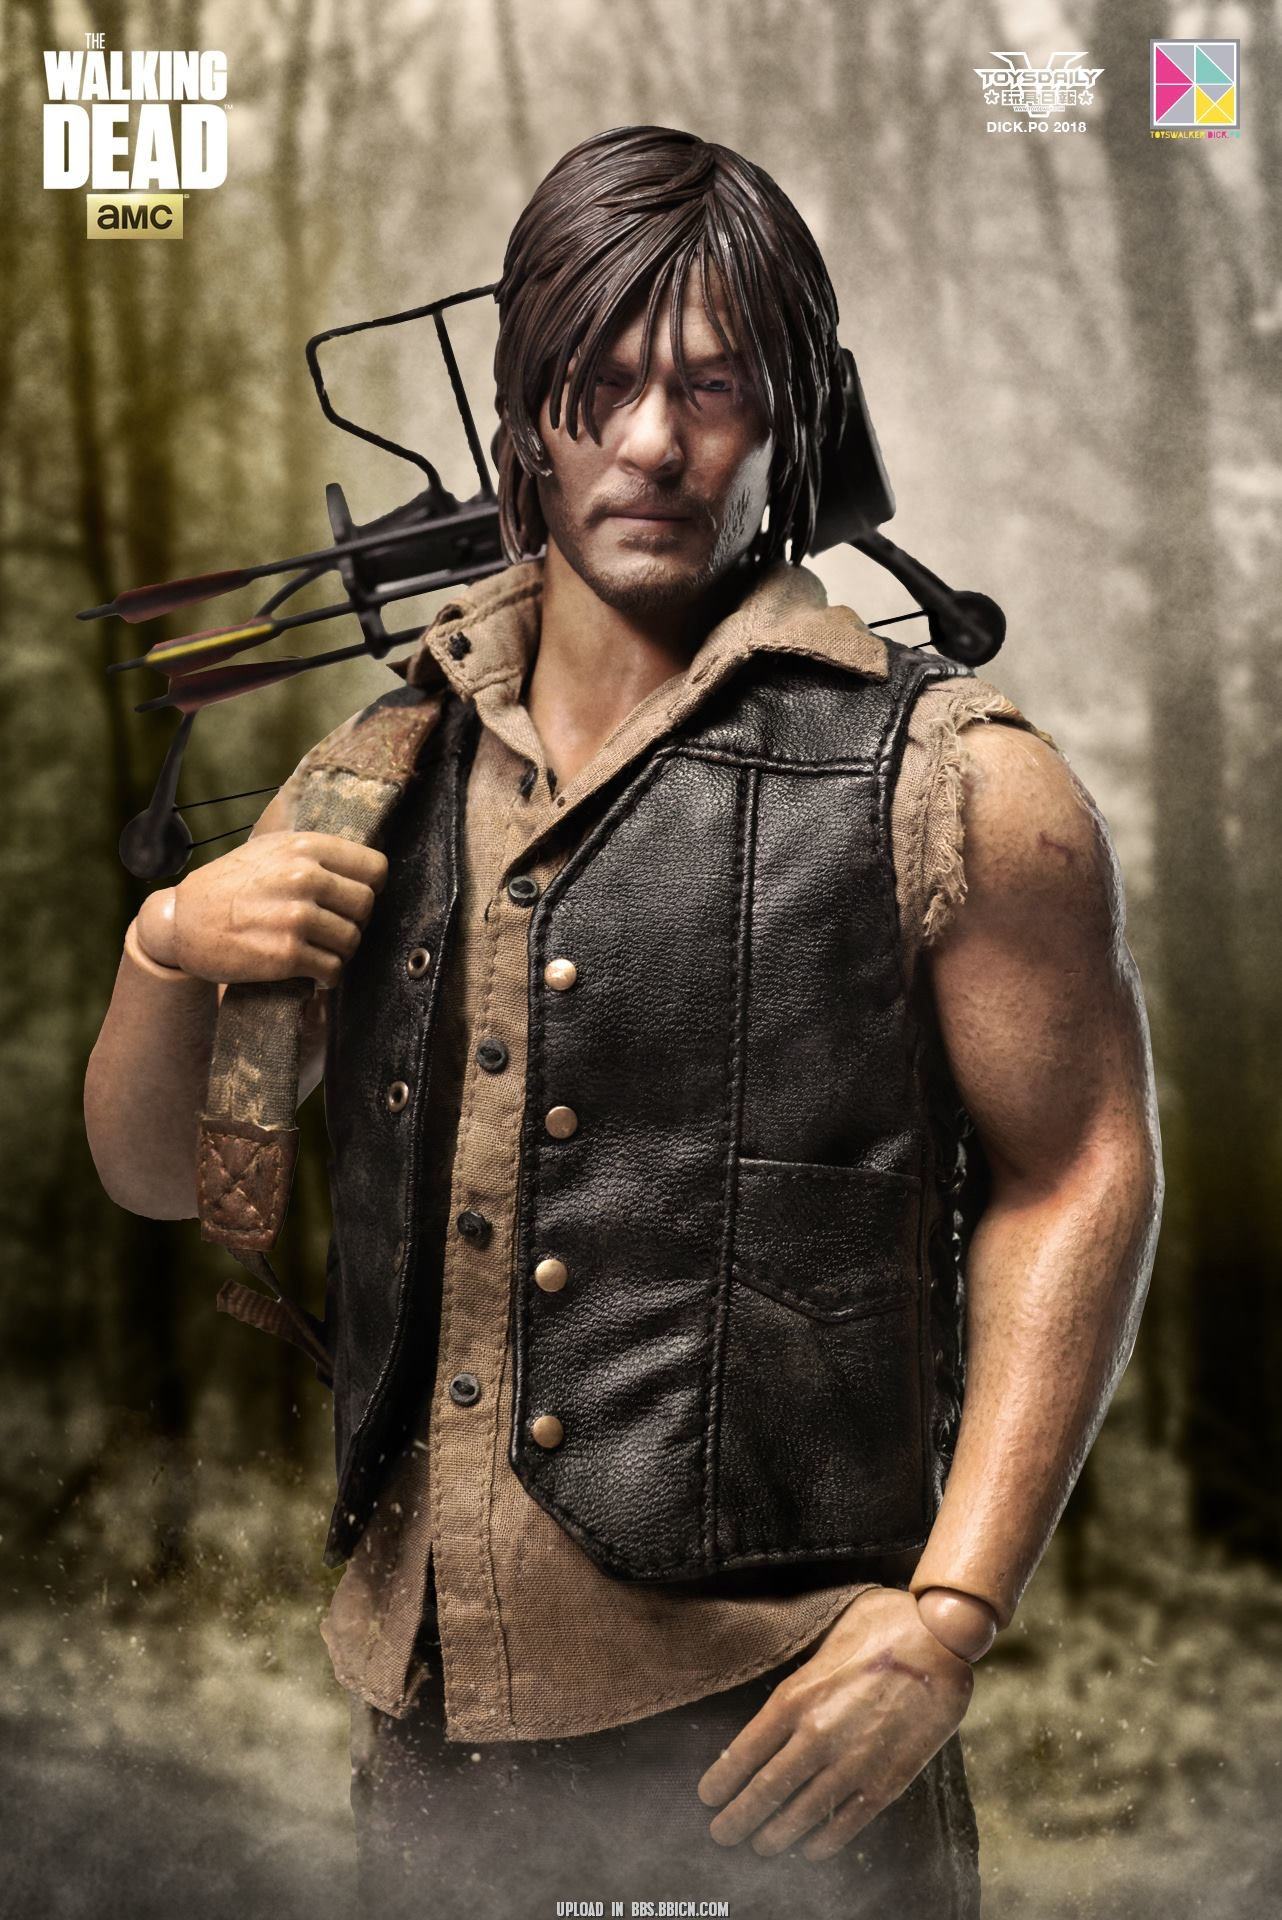 The Walking Dead Daryl Dixon2.jpg